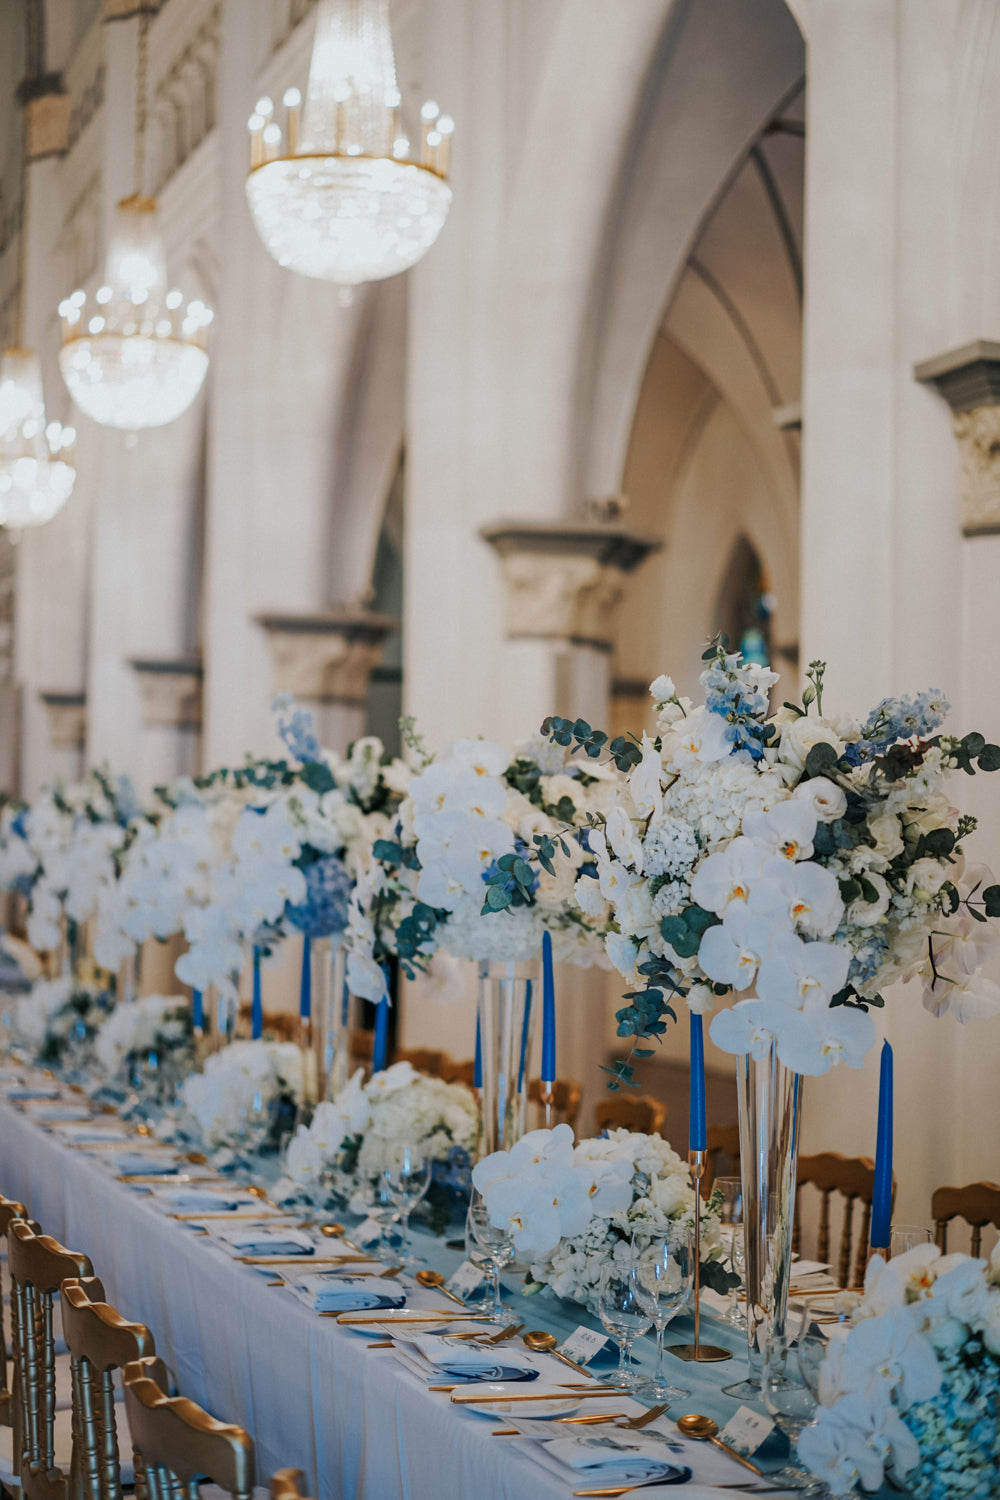 Long dinner table styled with blue candles in gold candlesticks and white and blue floral arrangements at a solemnization